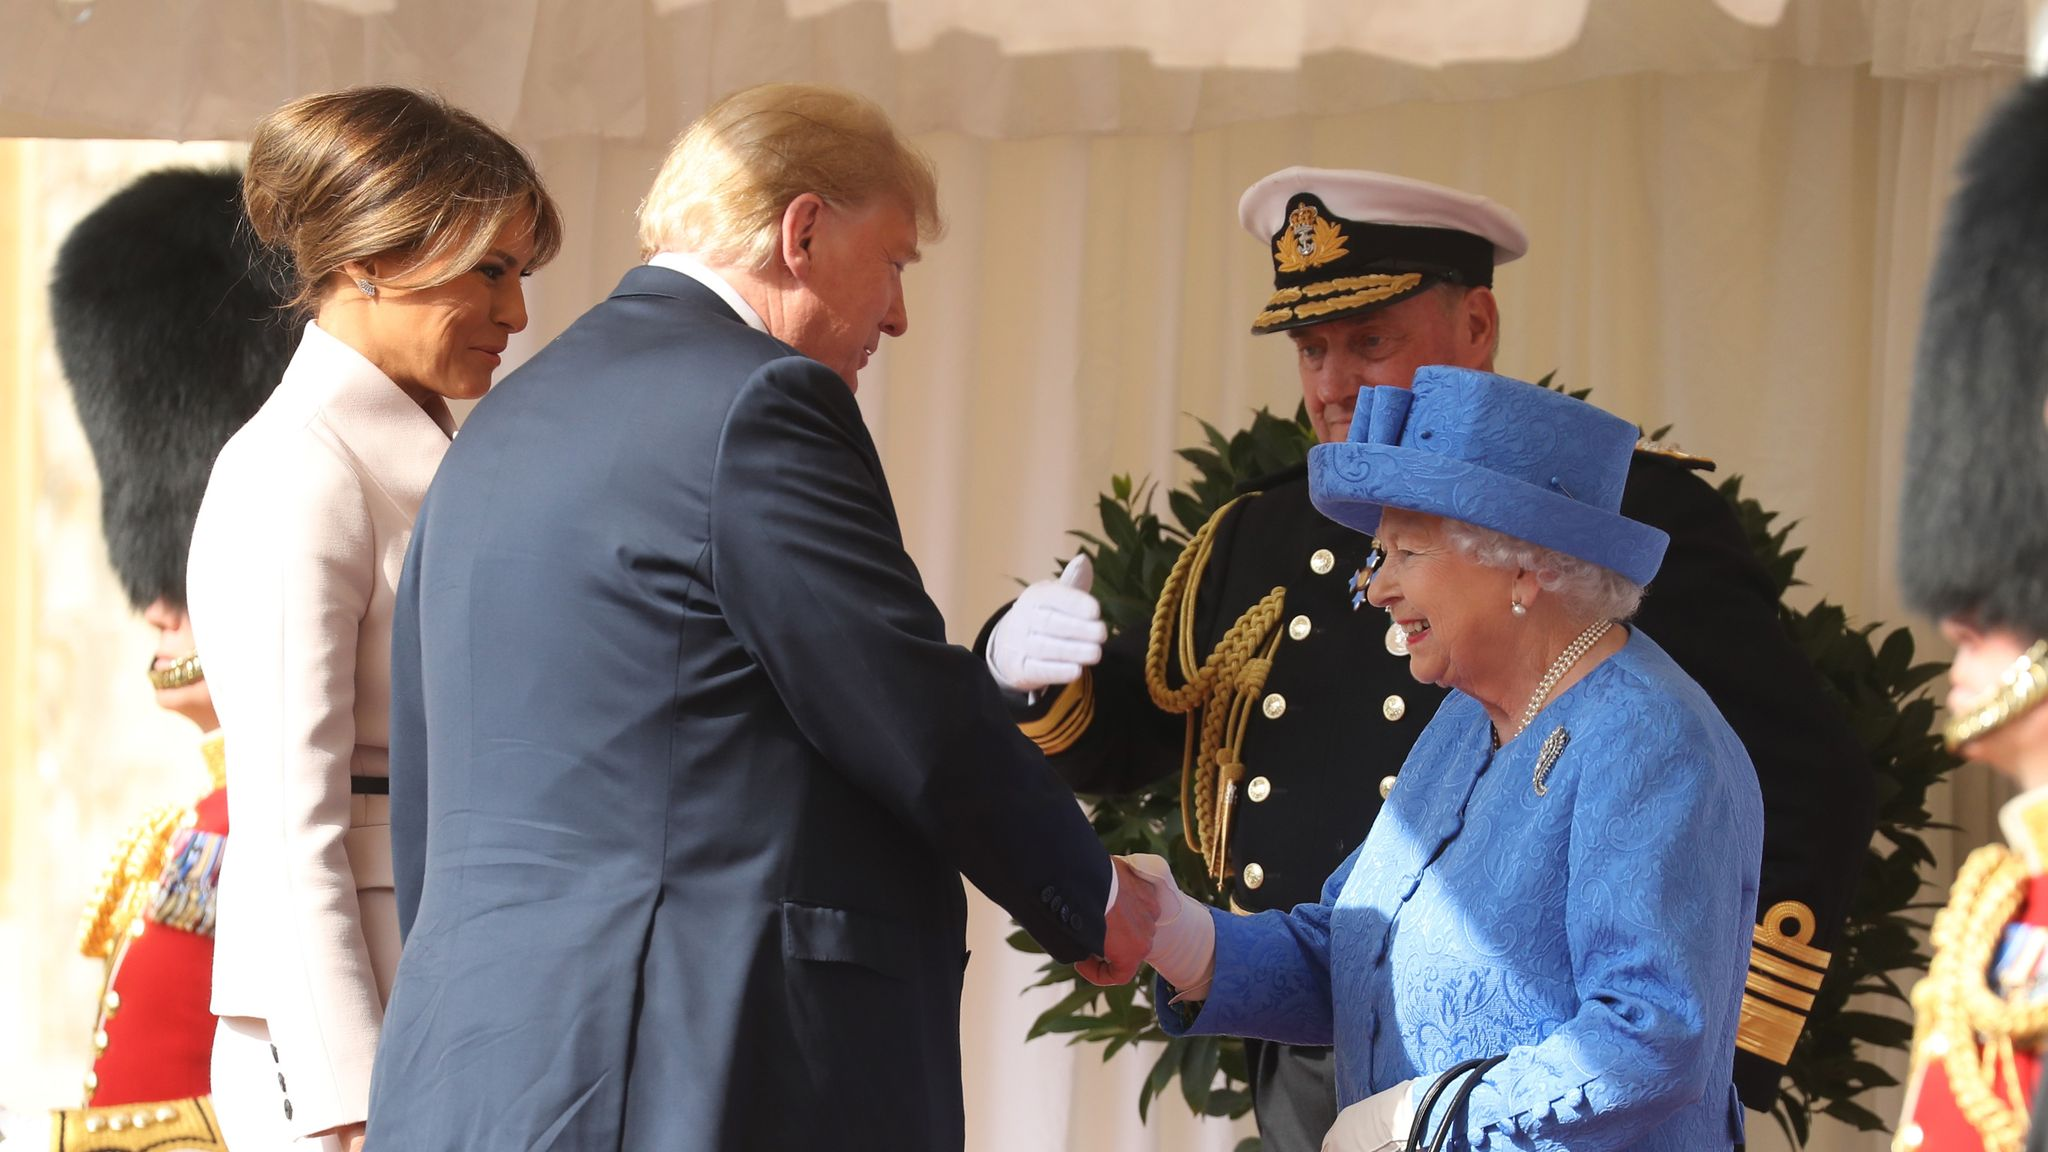 The Queen And Trump Meet For The First Time